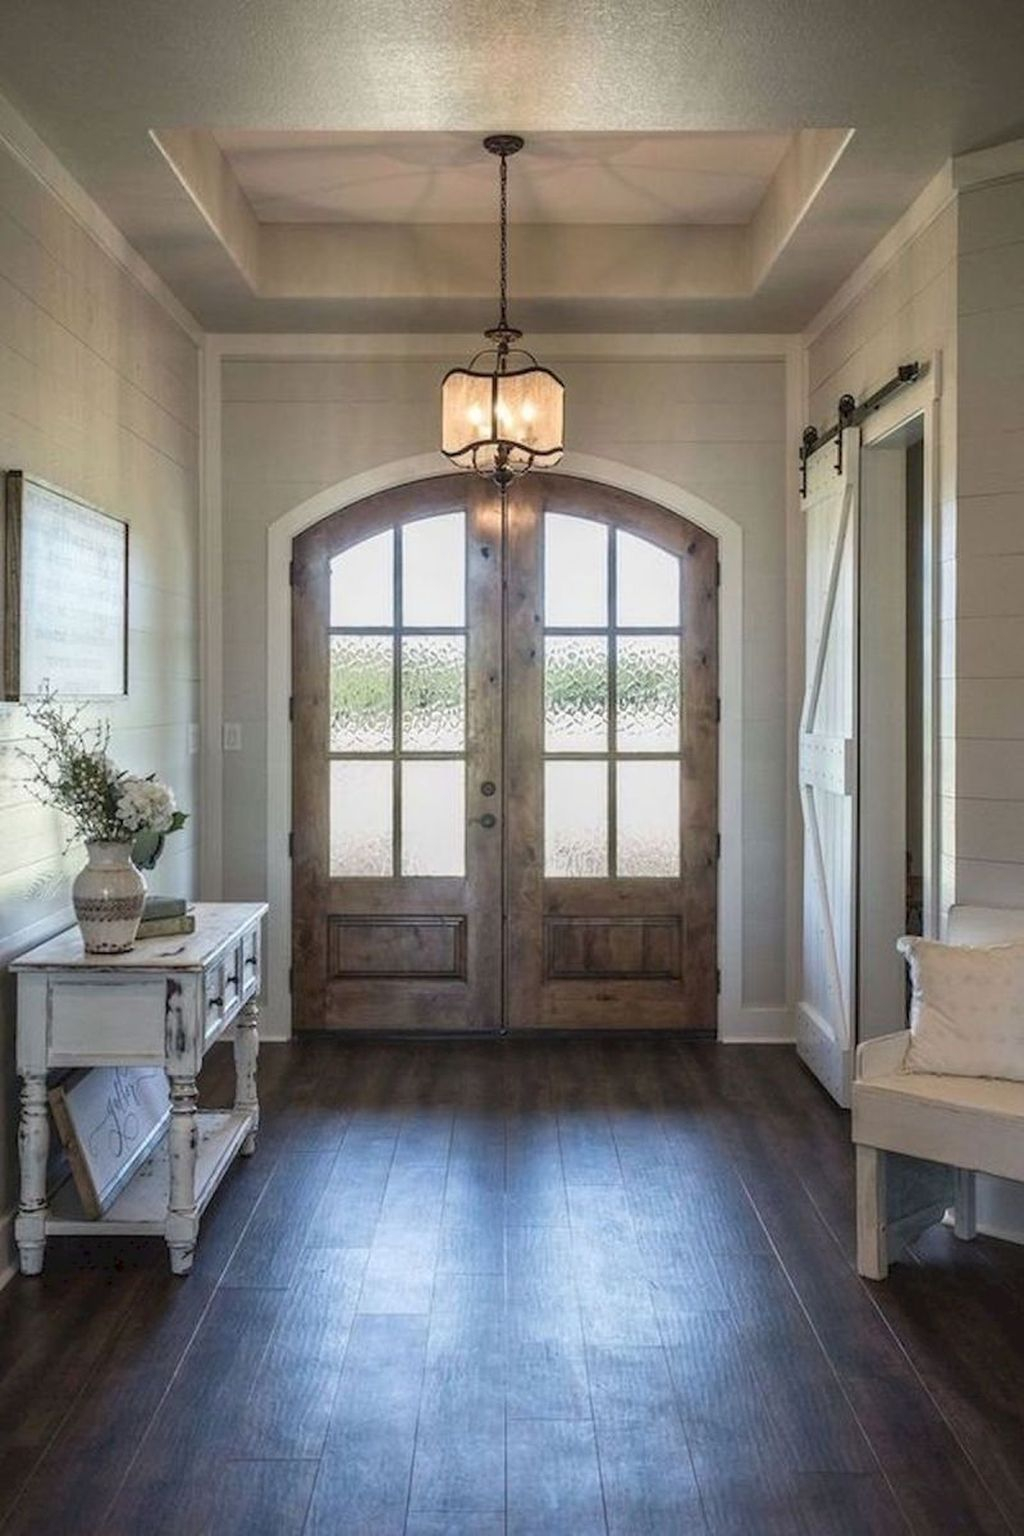 Adorable Home Interior Remodel Design Ideas To Try Asap 01